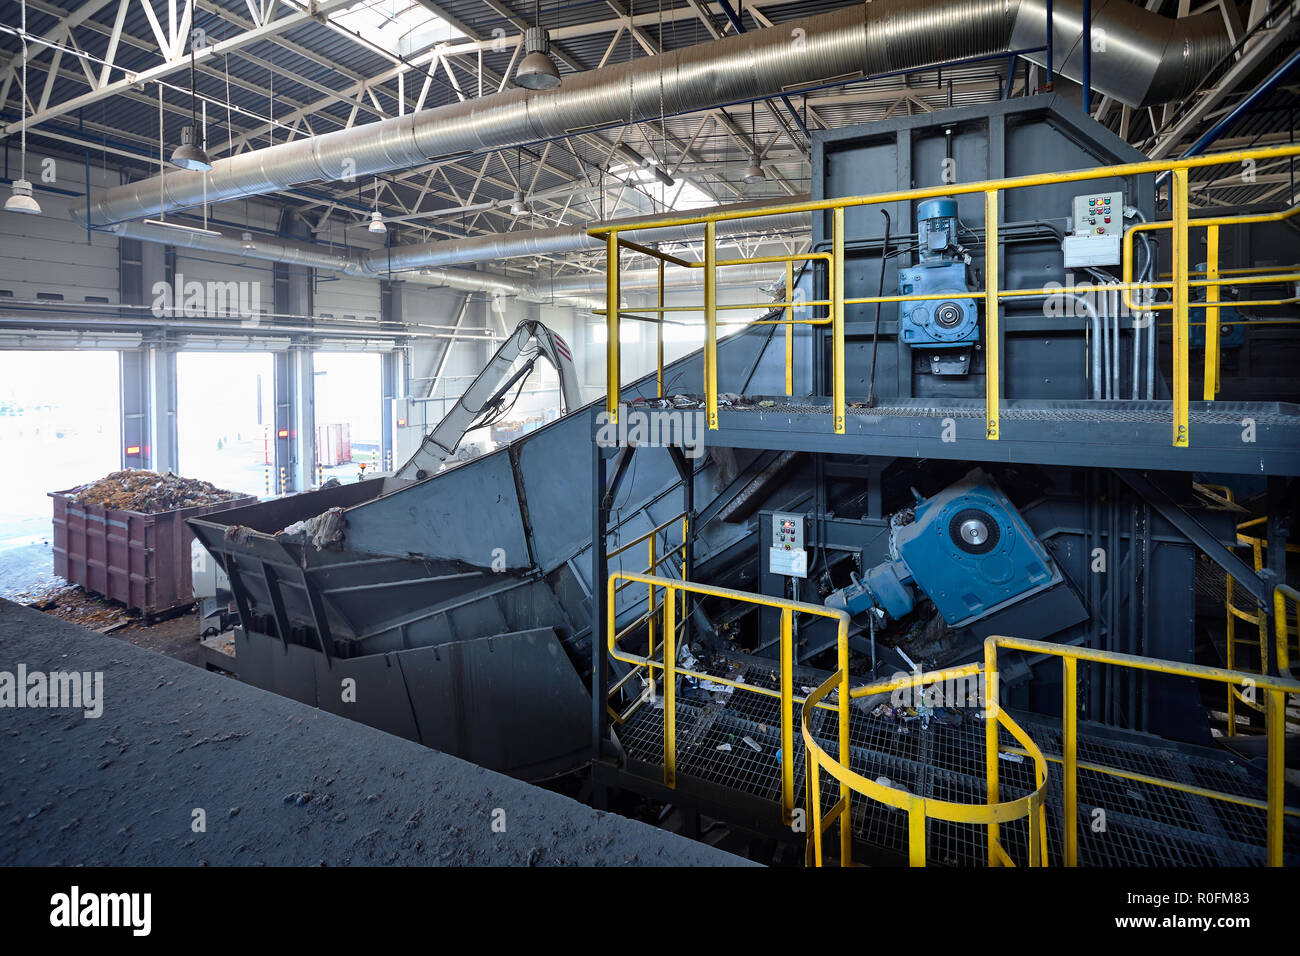 Refiner and chain-stepped conveyor equipment of modern waste recycling plant transports waste from receiving department to sorting, recycling and disp Stock Photo